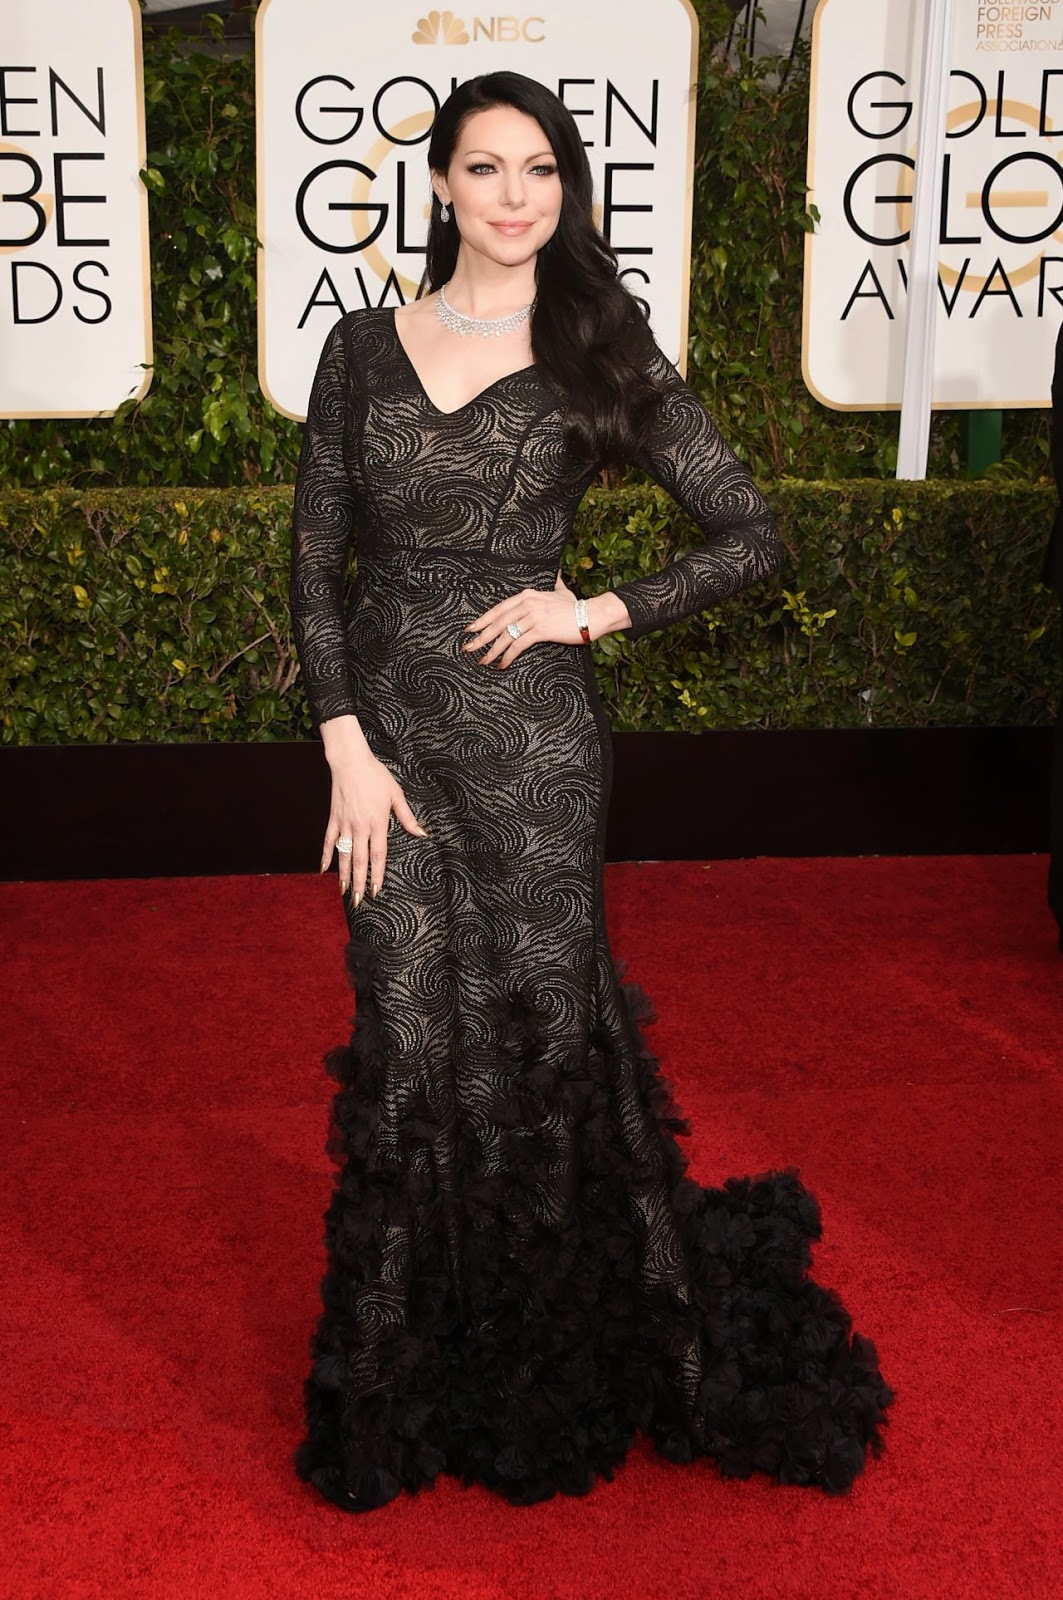 Laura Prepon stuns in a Christian Siriano dress at the 2015 Golden Globes